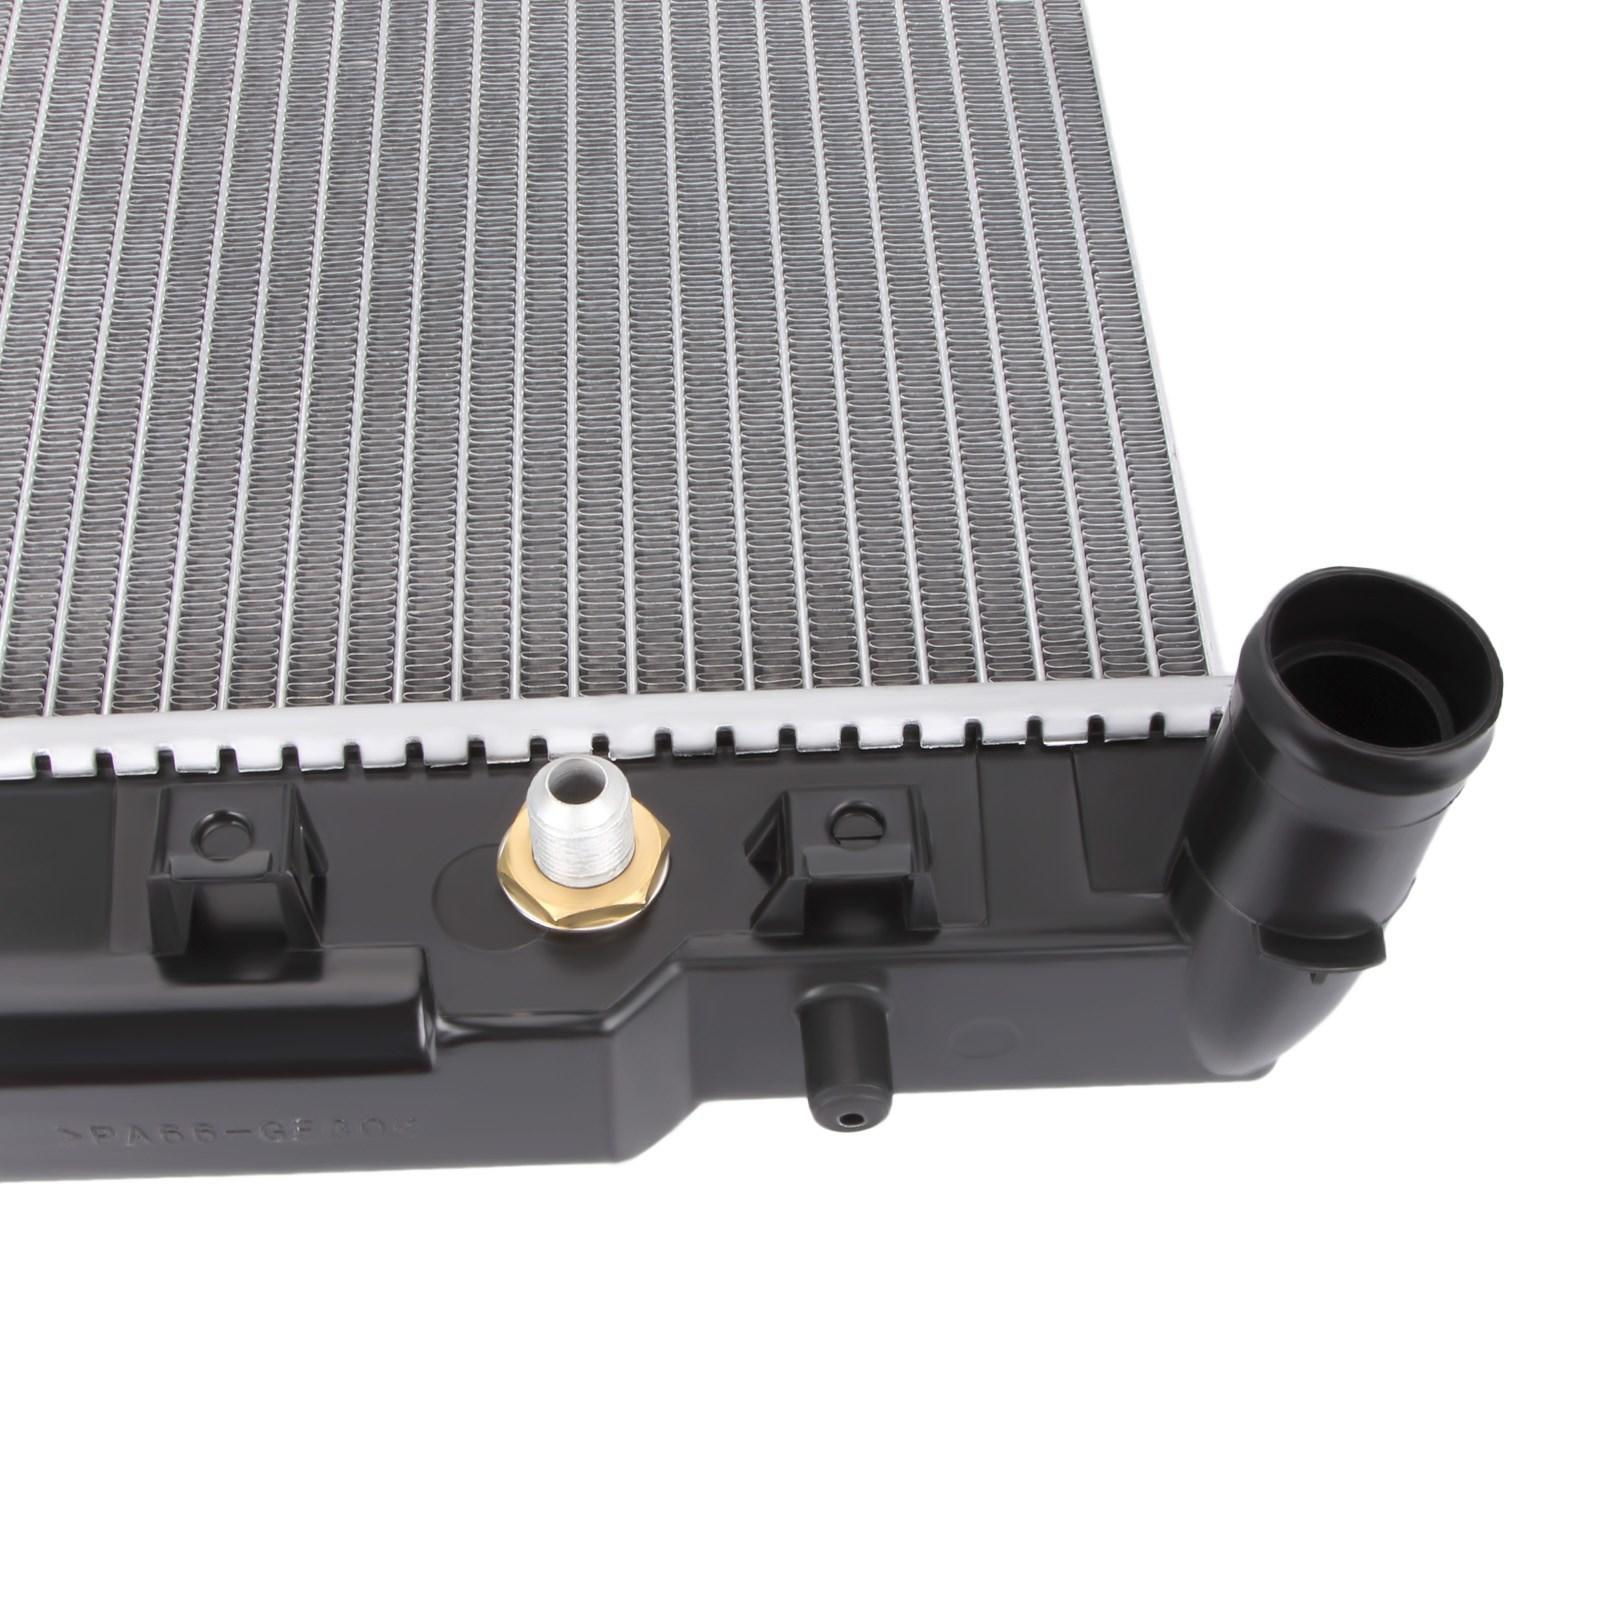 Dromedary-Find Hg Holden Radiator Holden Rodeo Radiator From Hongdao Car Radiator-1